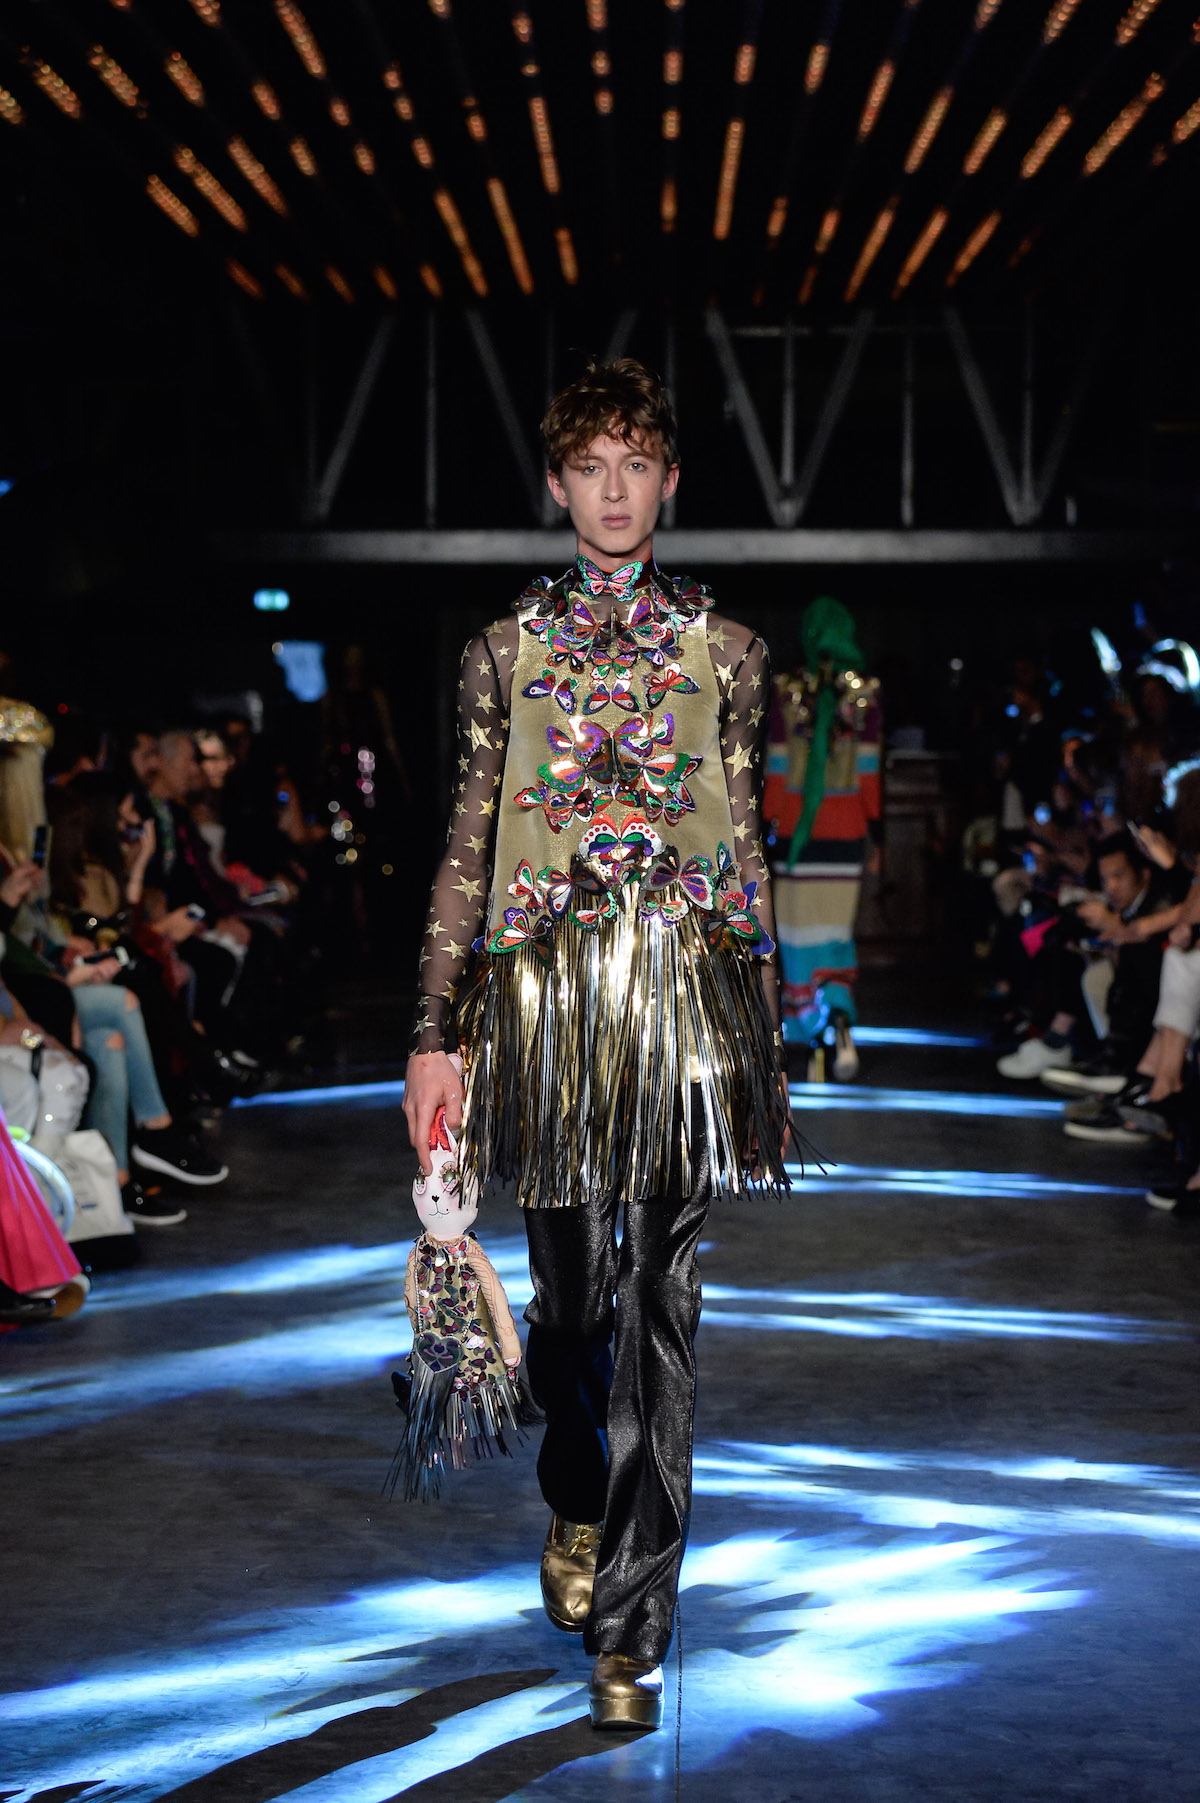 Pixelformula womenswear ready to wear prêt a porter summer 2016 Manish Arora